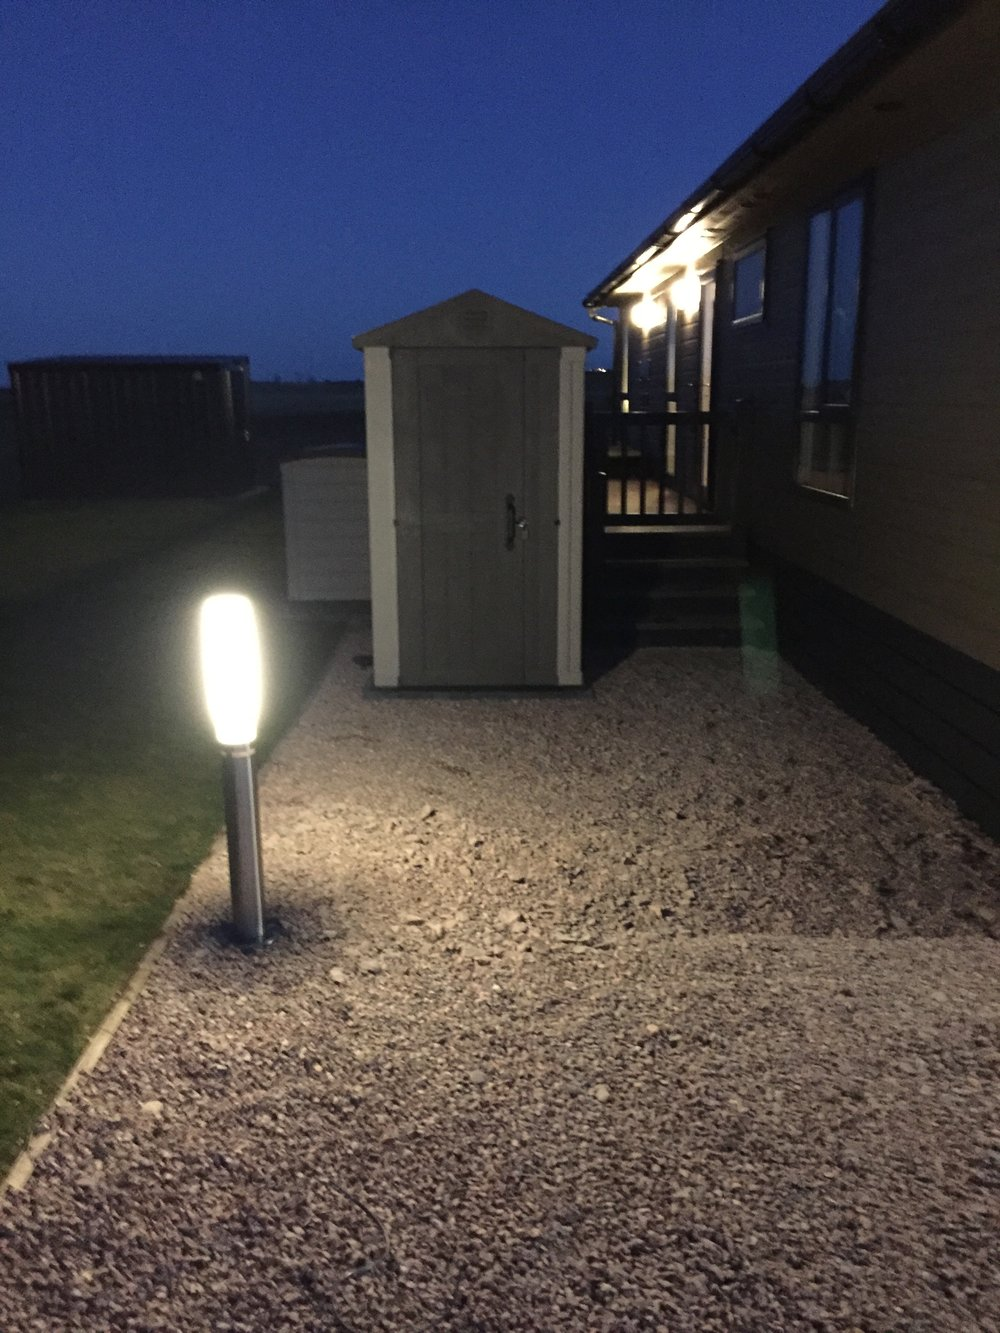 modes liilesy extra lamps security products solar lighting wide powered enjoy angle with led illumination motion light sensor